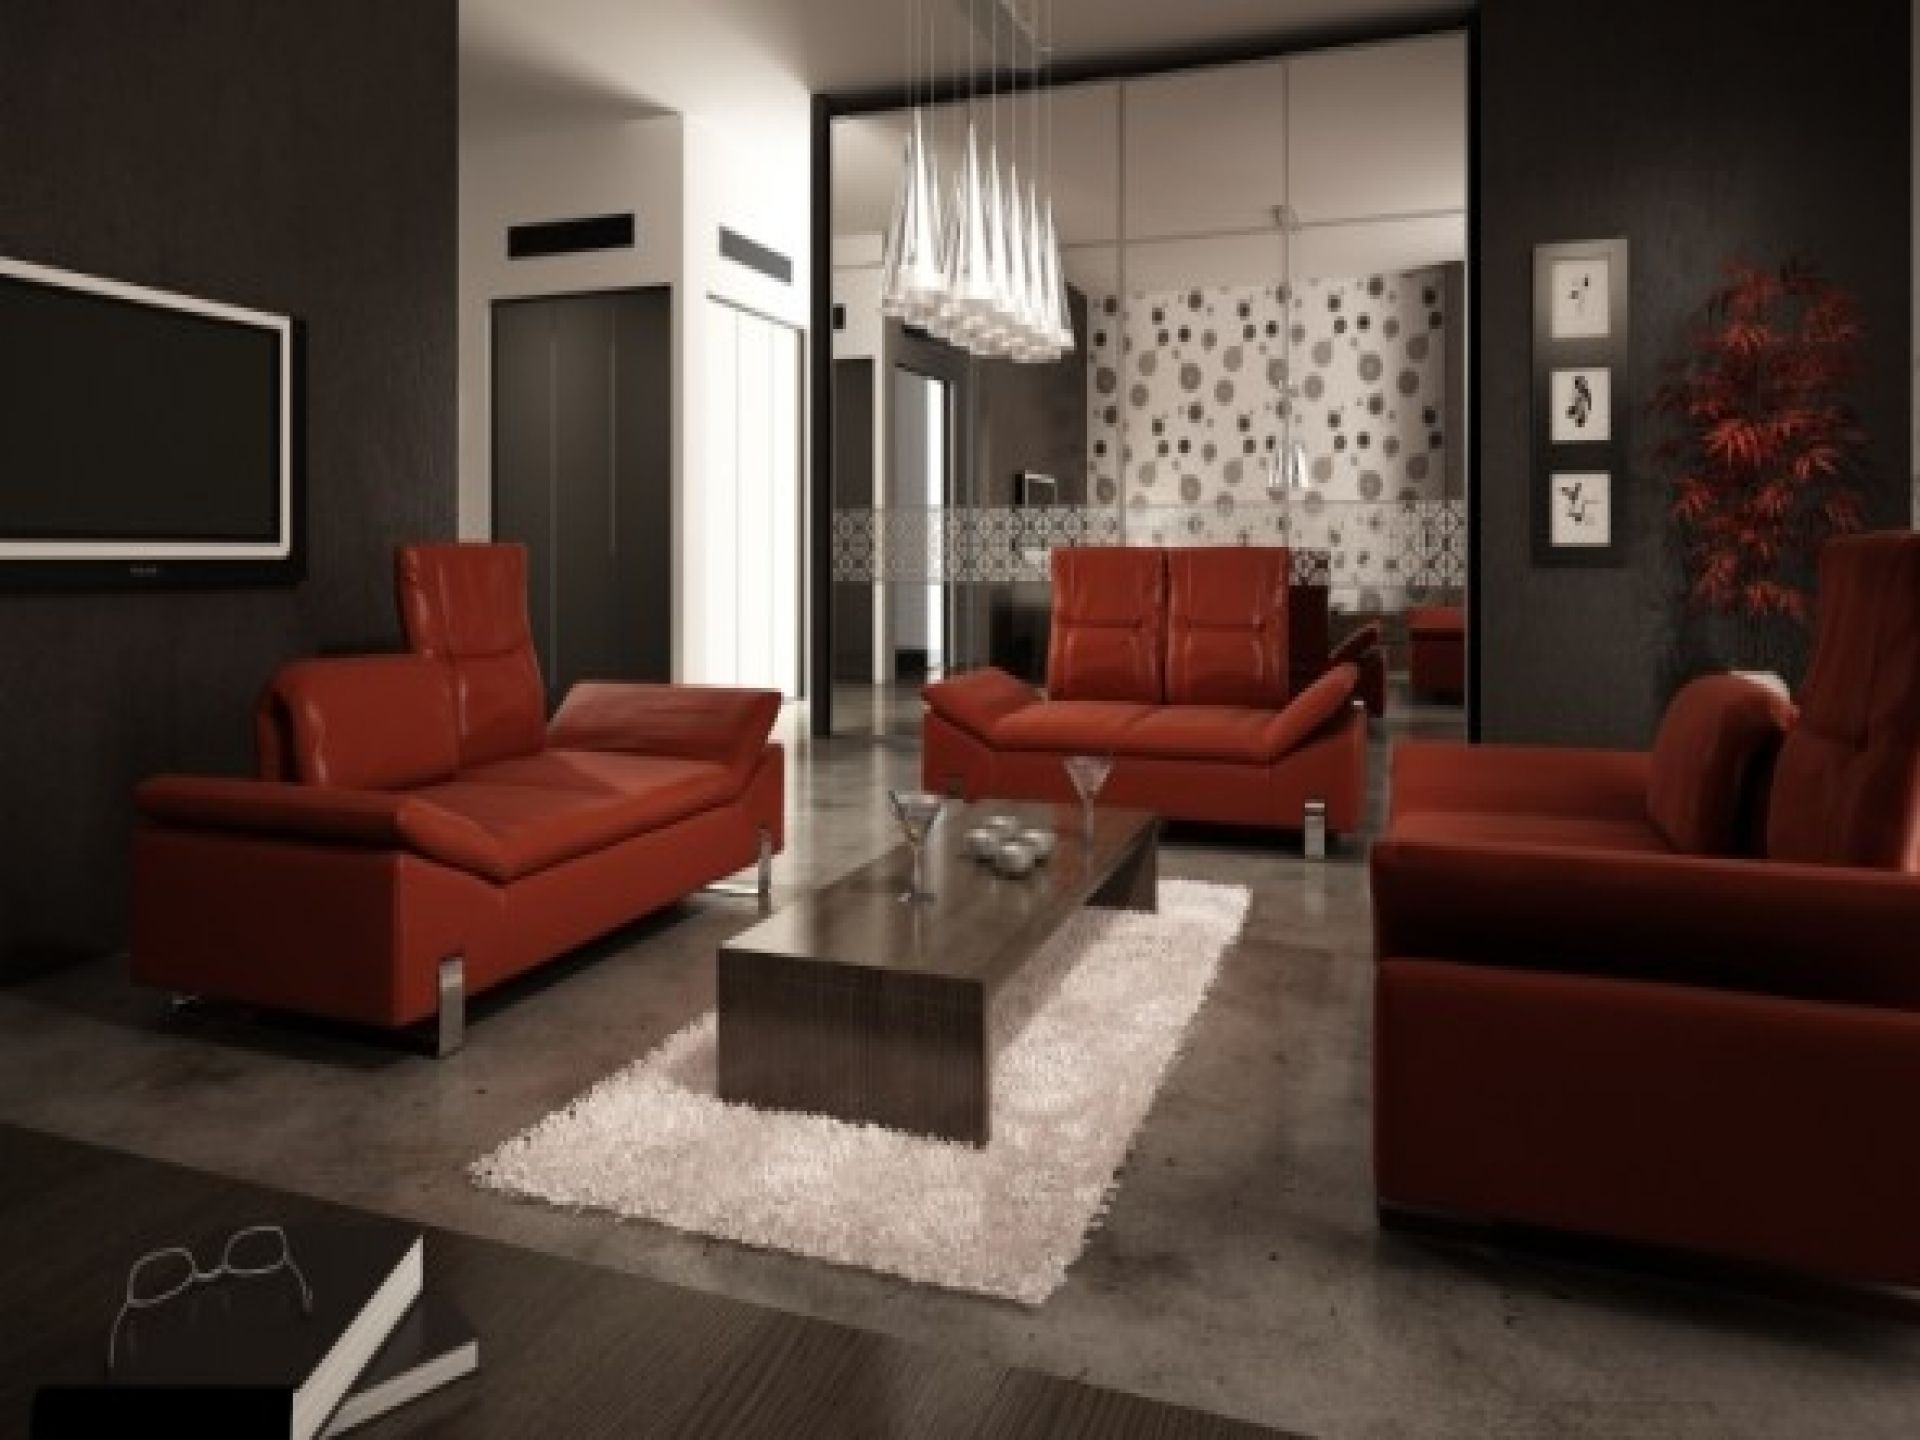 Red Leather Sofa Living Room Ideas Google Search Red Leather Sofa Leather Sofa Living Room Red Leather Sofa Living Room